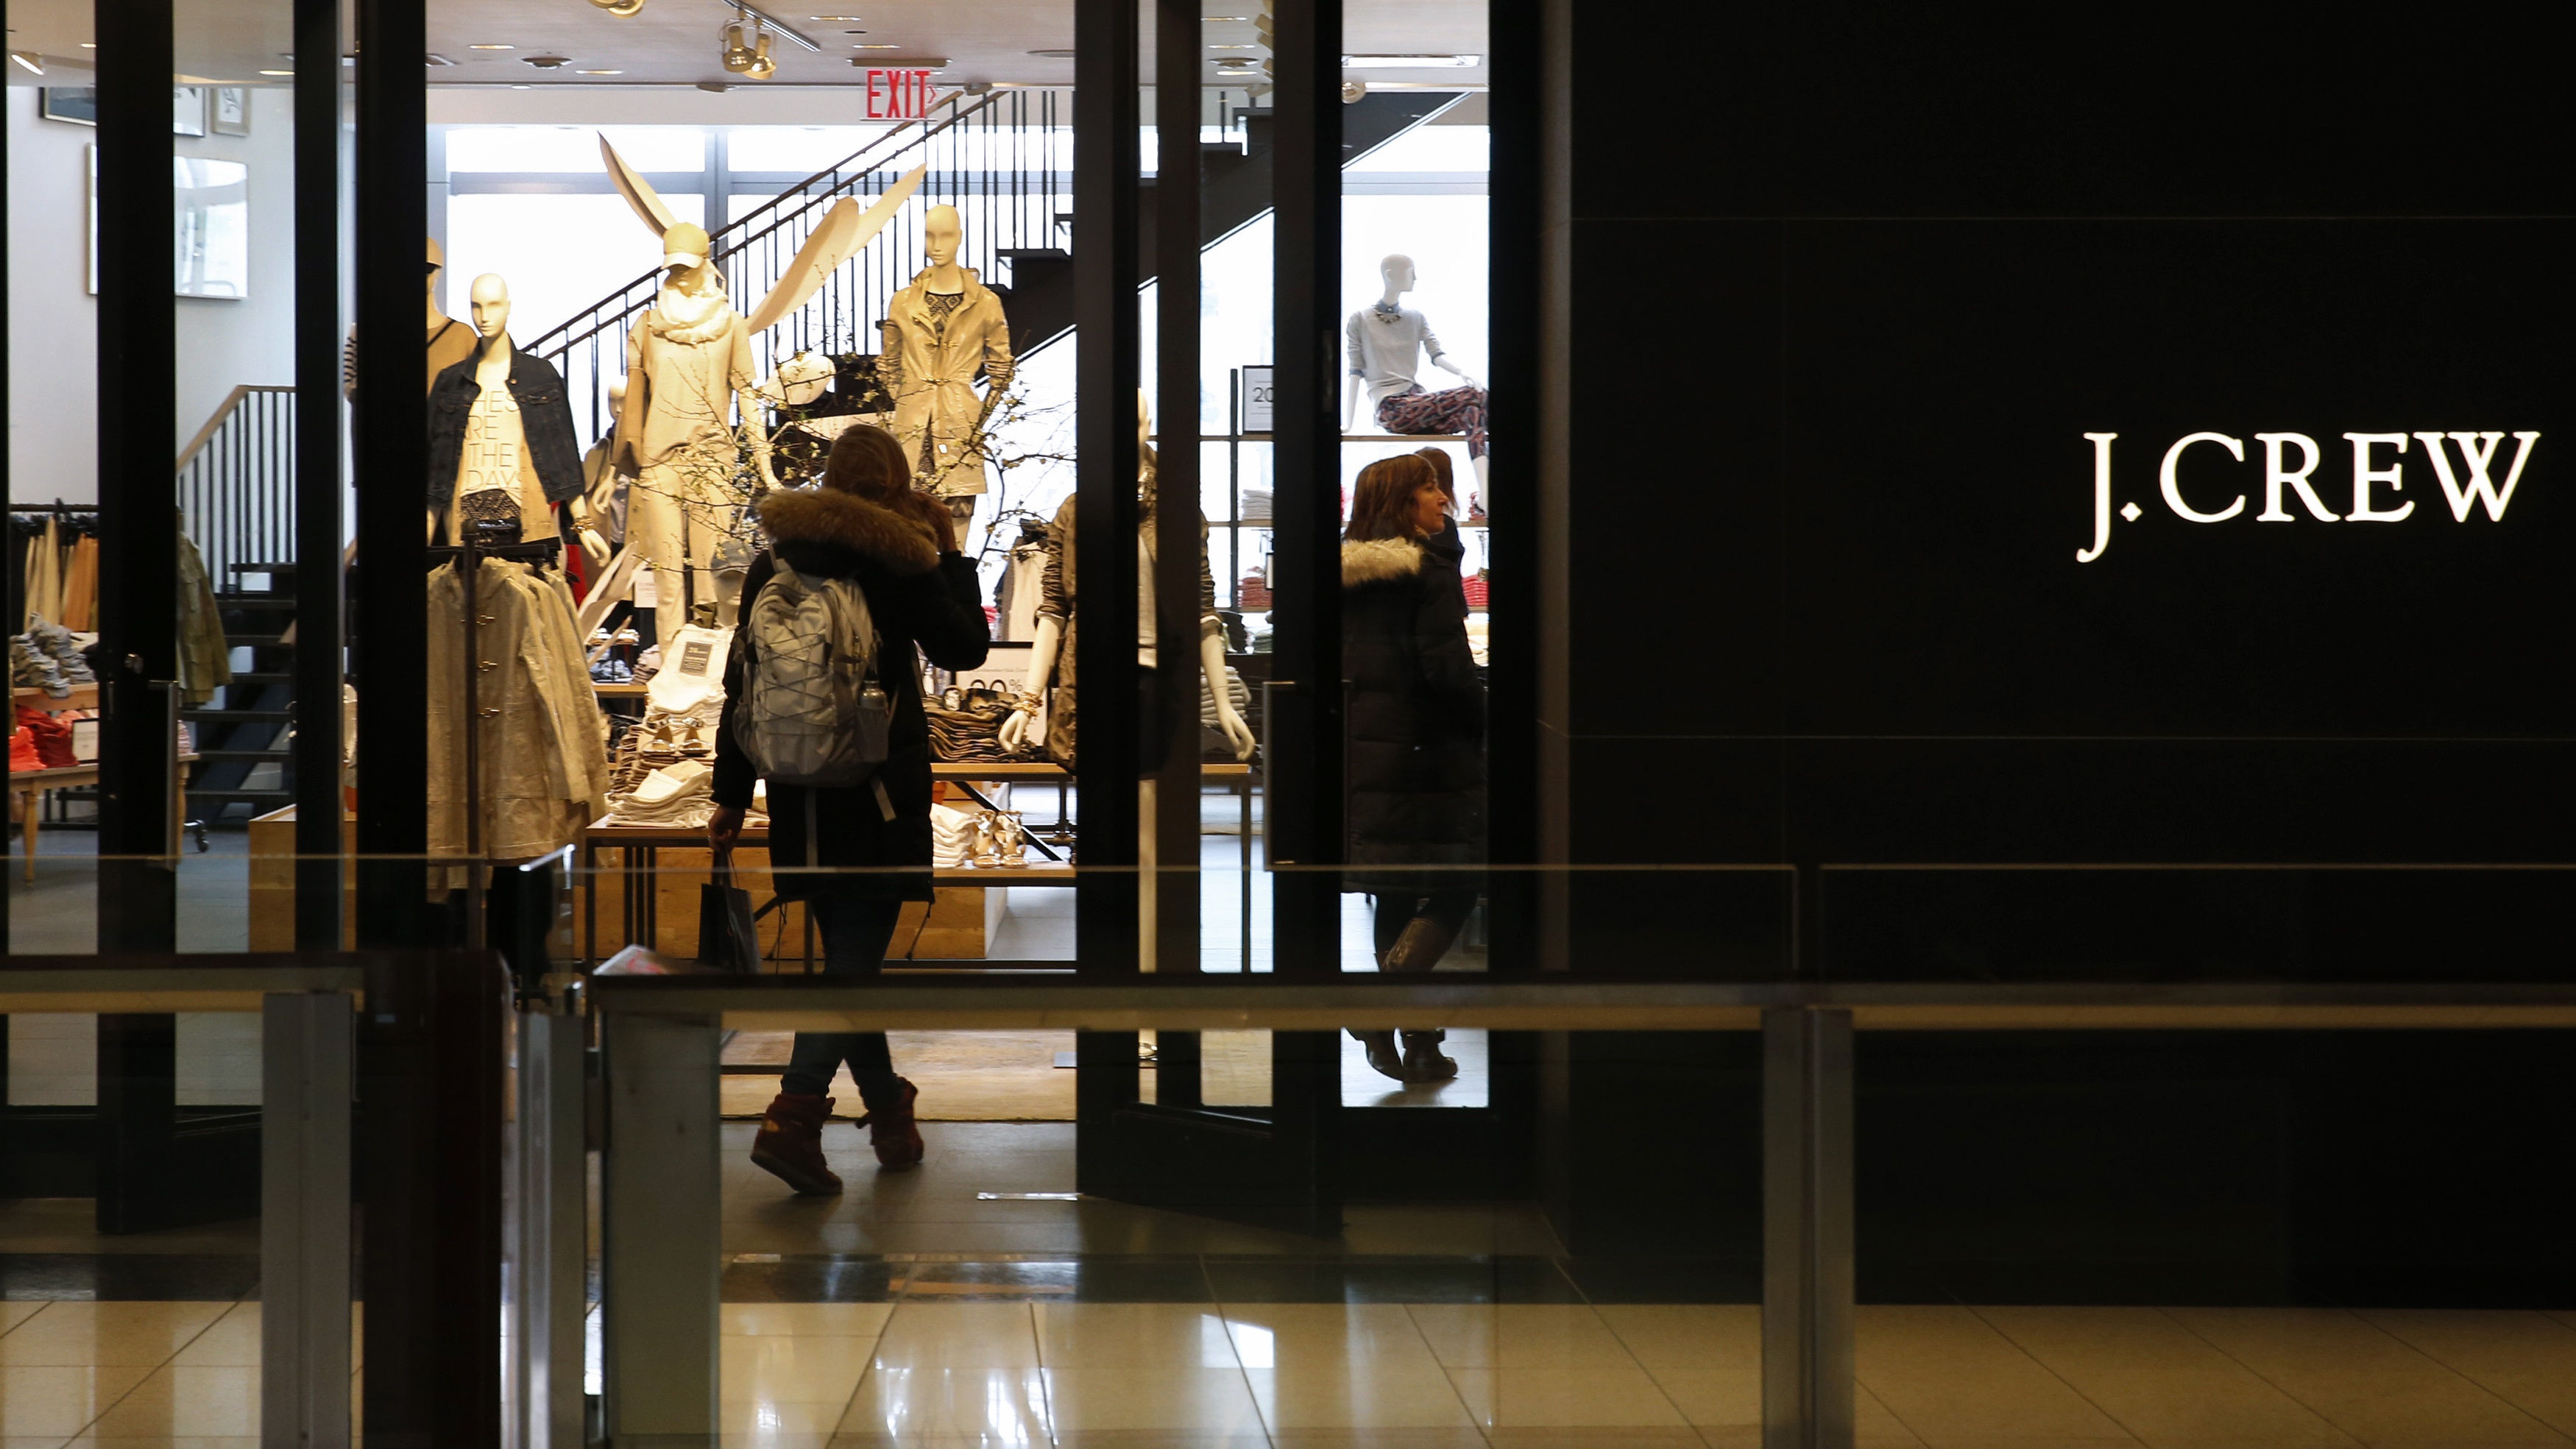 A customer walks into a clothing retailer J.Crew store in Manhattan, New York, March 3, 2014.